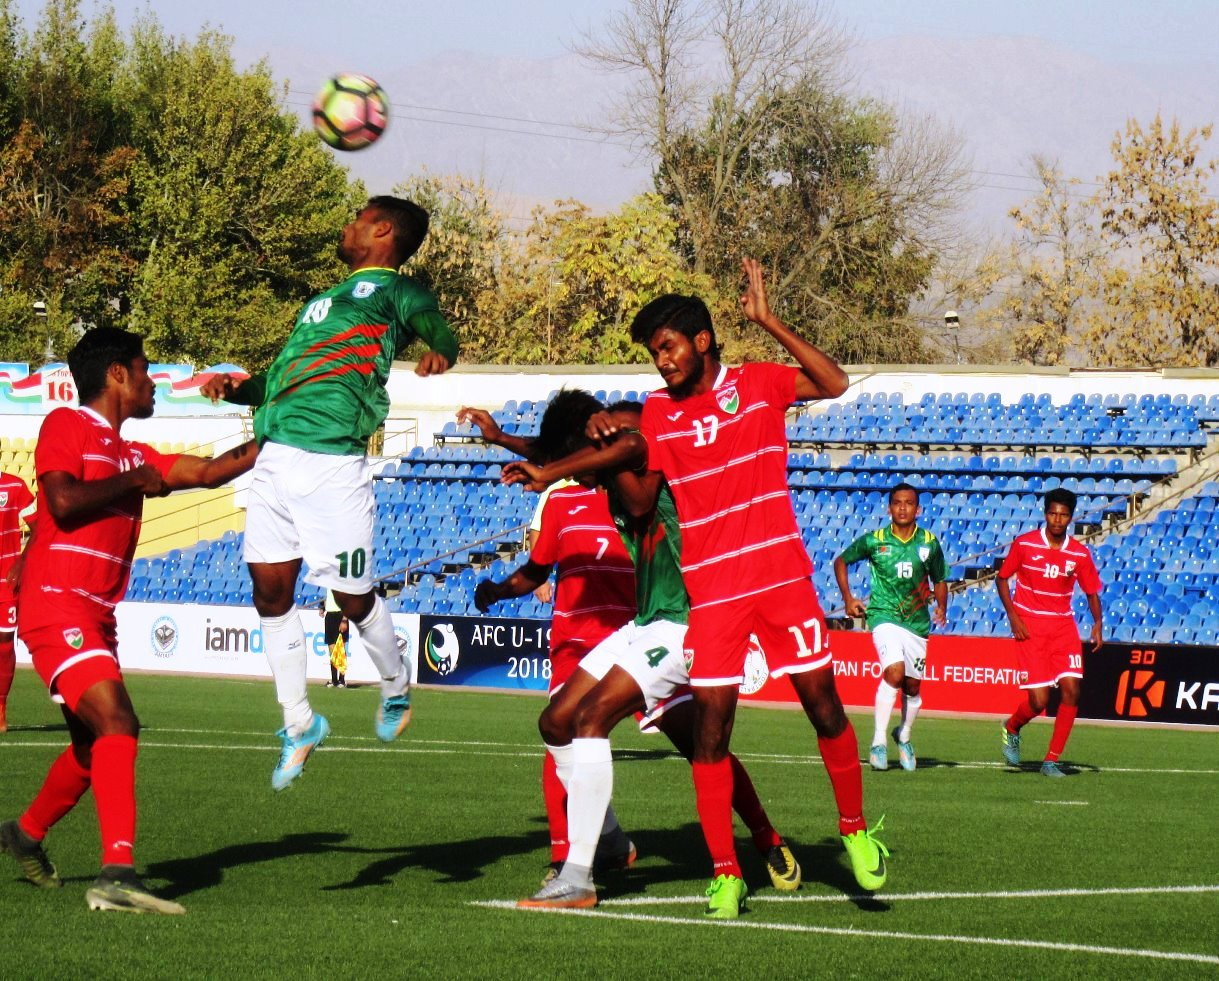 Bangladesh beat Maldives 1-0 in AFC Championship Qualifiers